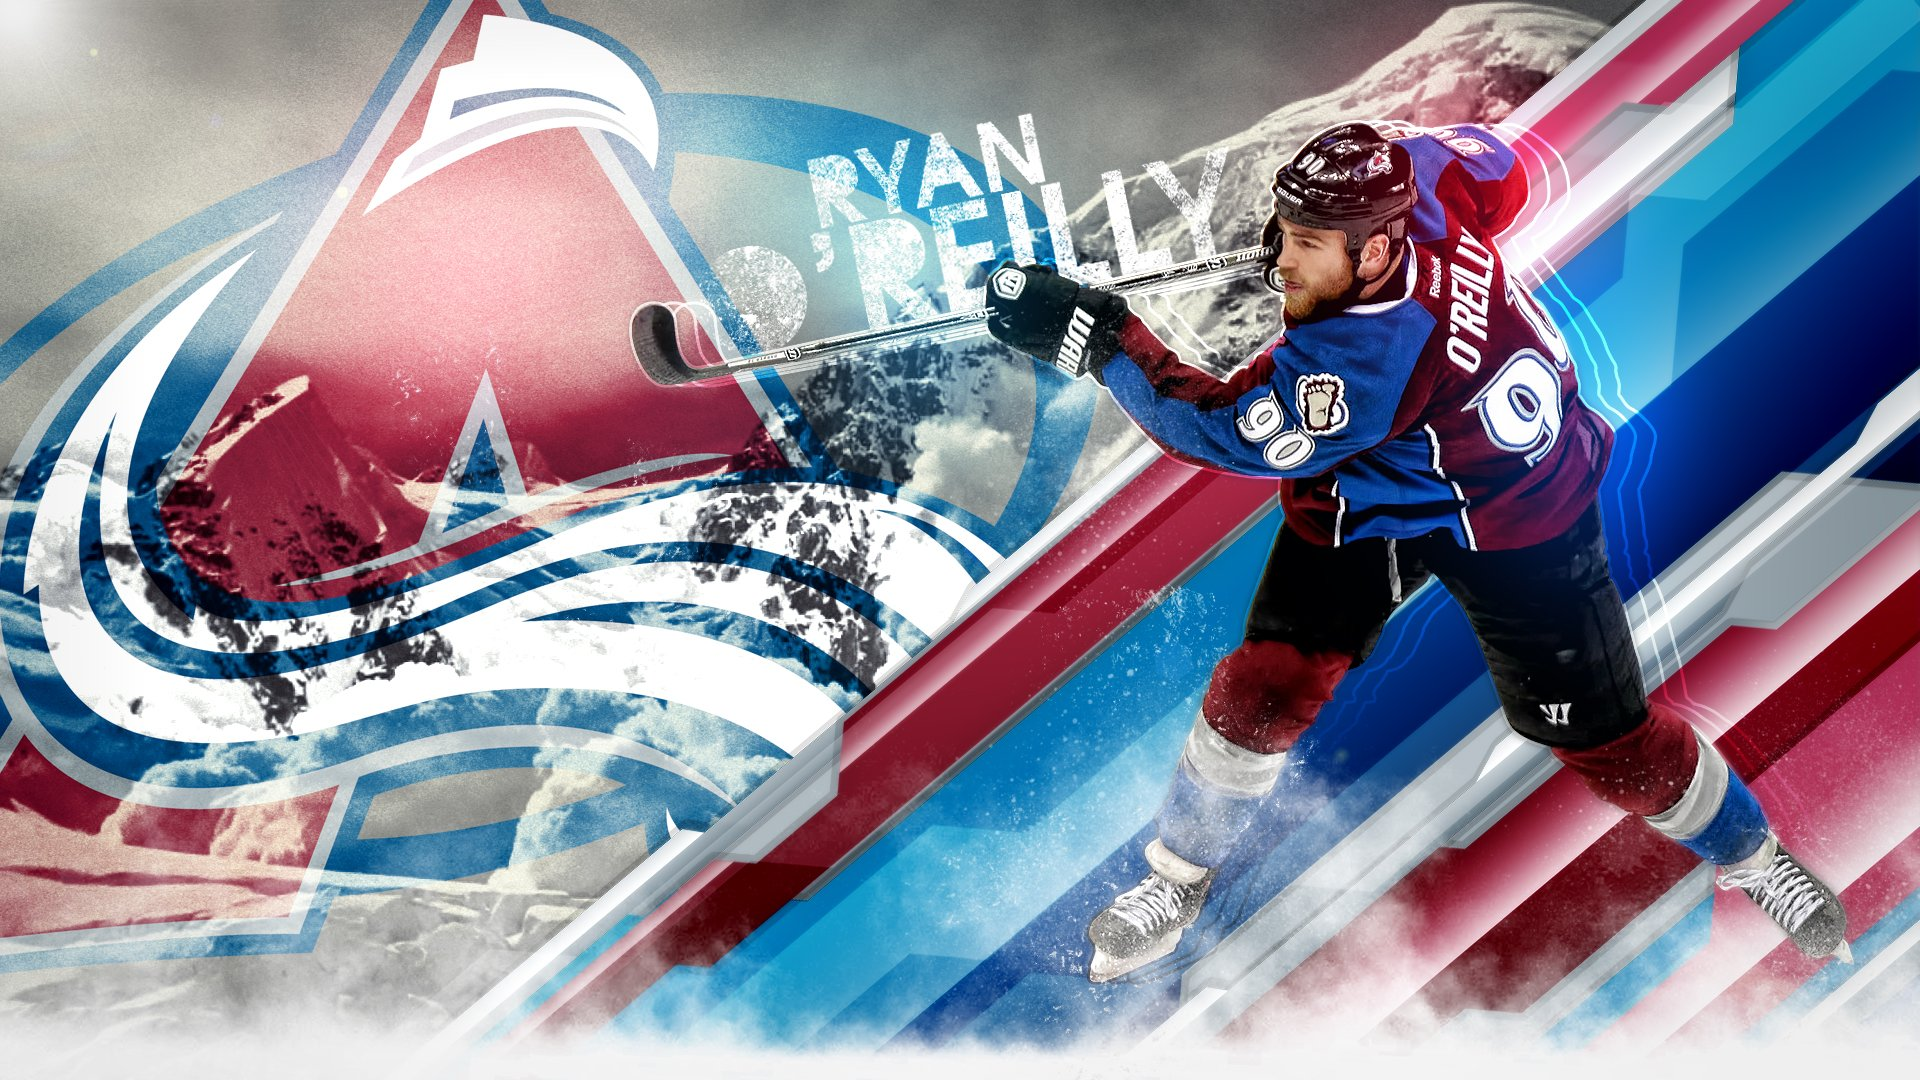 Colorado-Avalanche-Backgrounds-COLORADO-AVALANCHE-nhl-hockey-background-wallpaper-wpc5803576